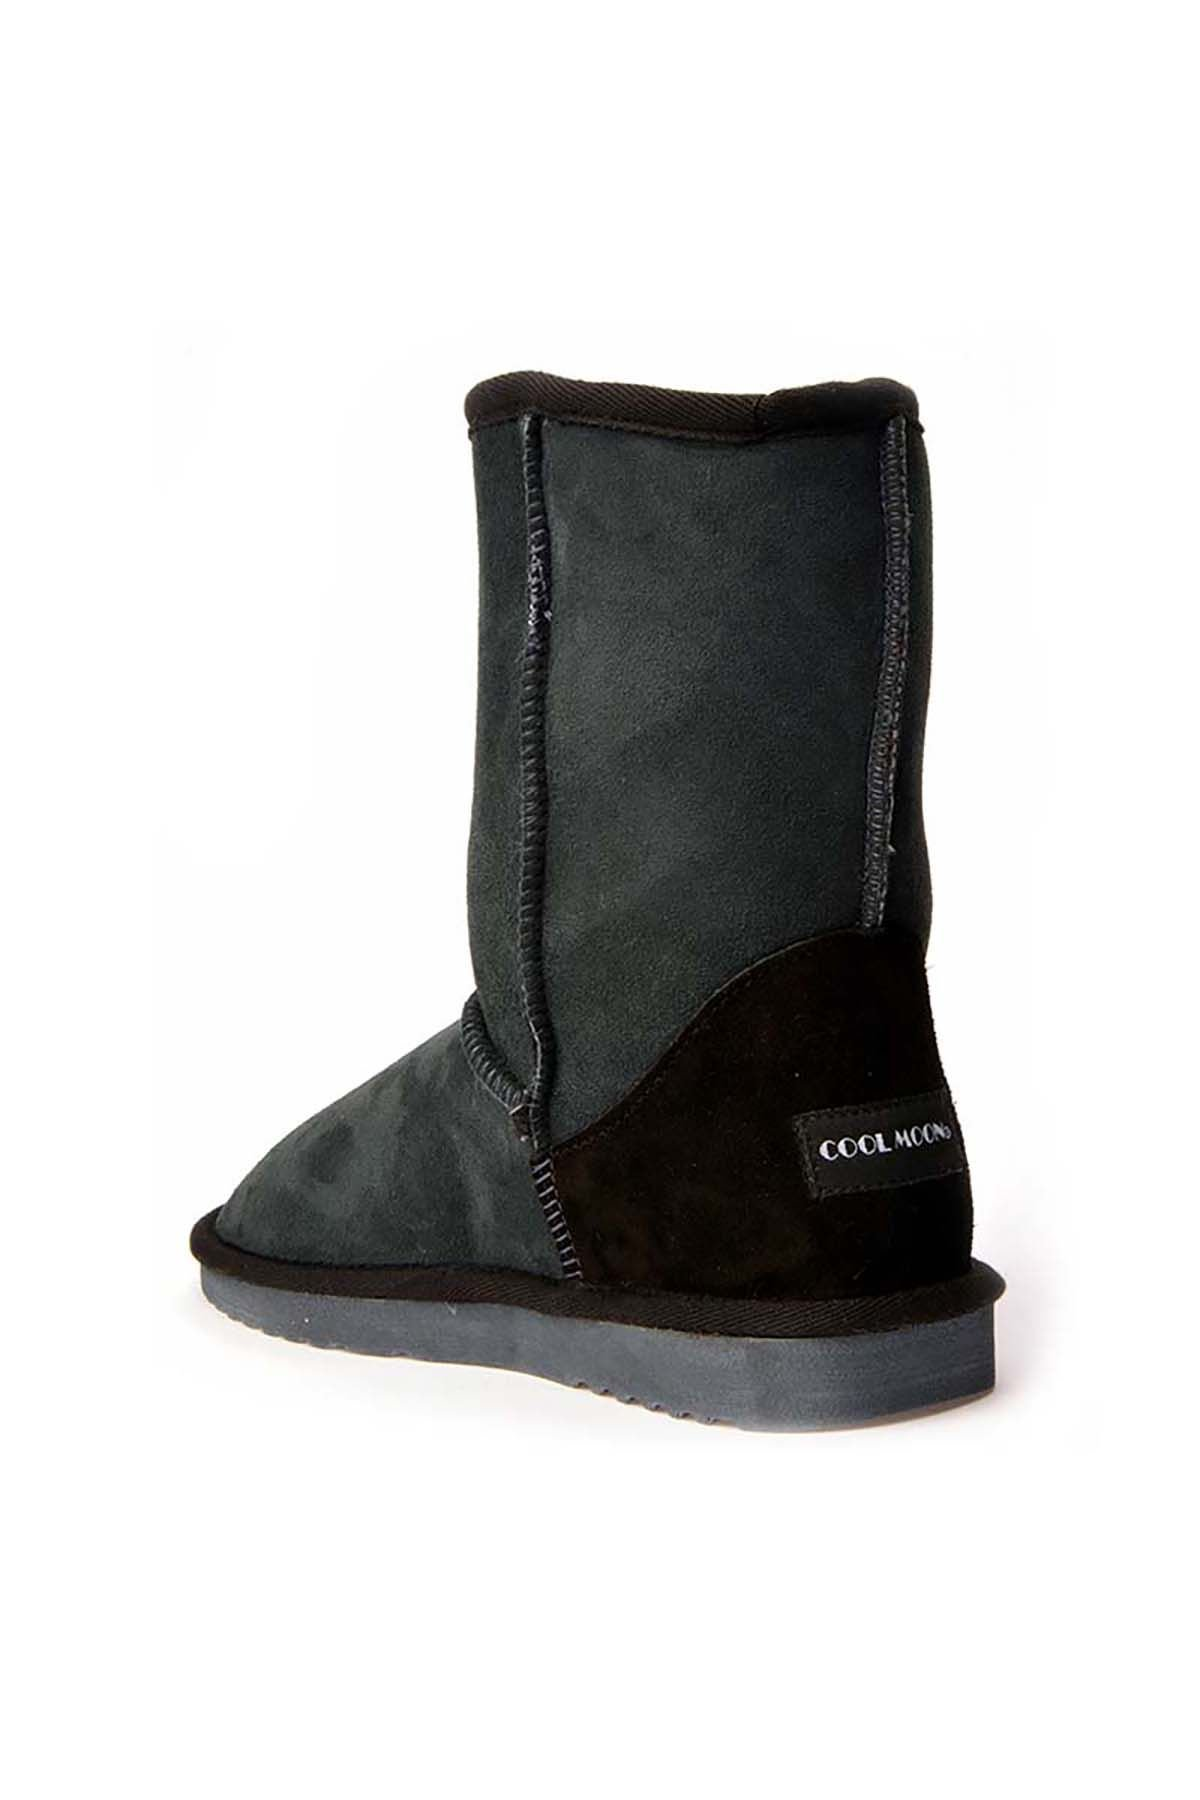 Cool Moon Classic Women Uggs From Genuine Suede Navy blue